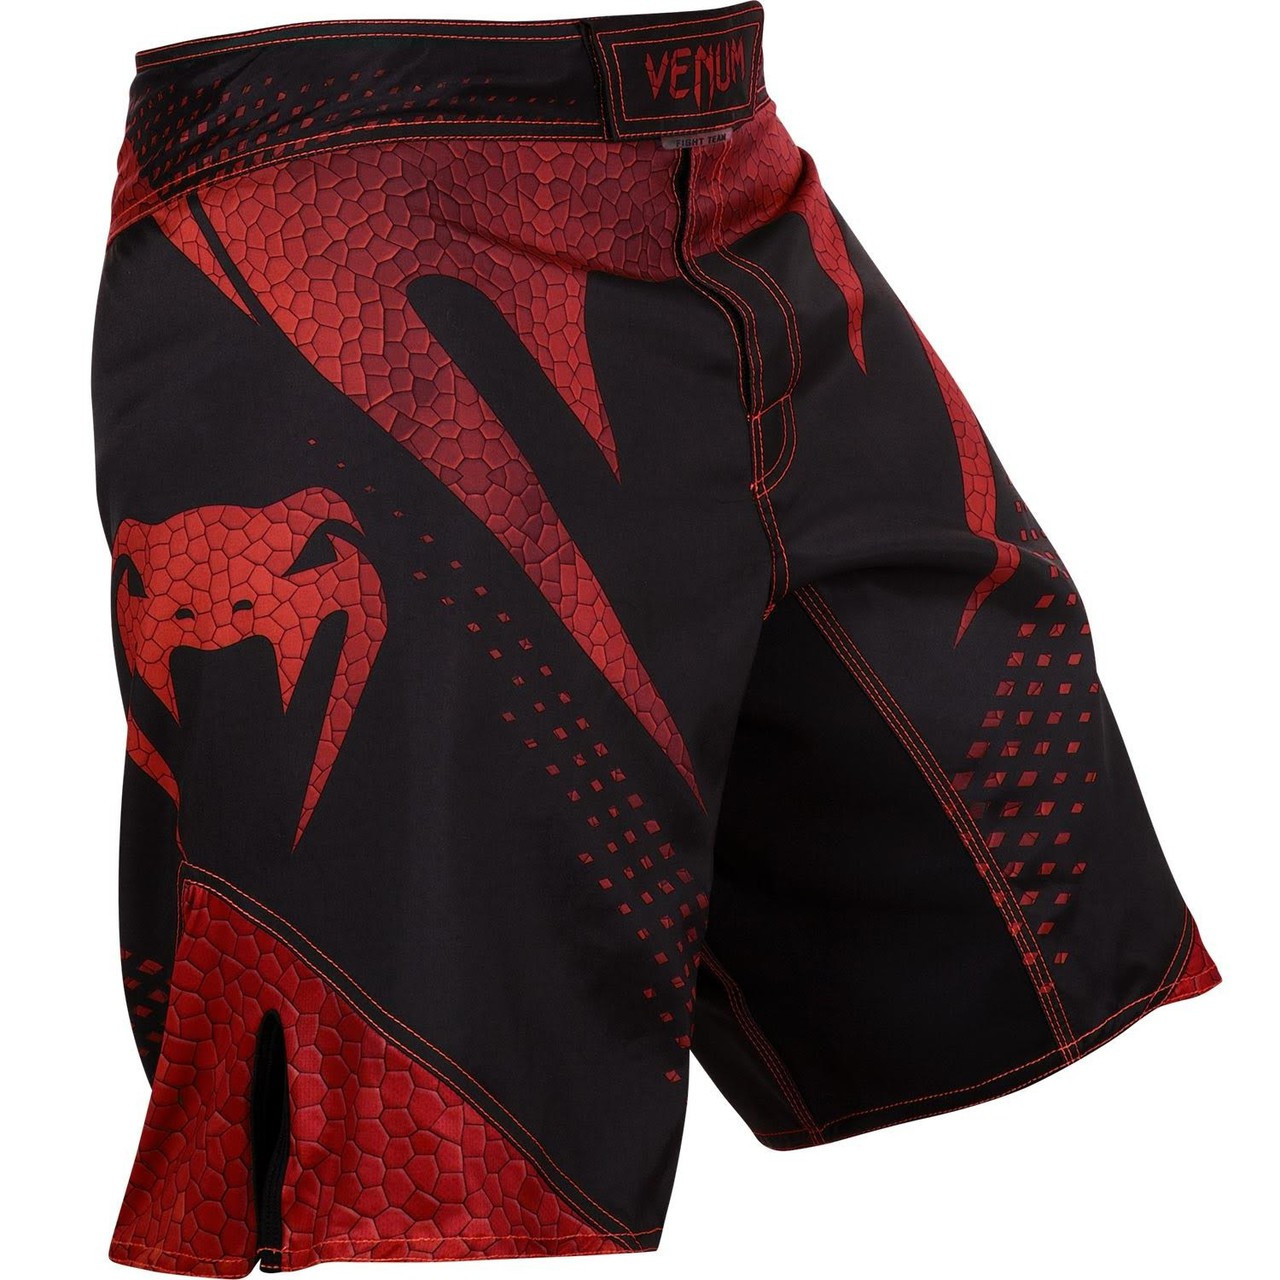 alternate front view of the new Venum Hurricane Fightshorts Amazonia Red MMA Shorts now available at www.thejiujitsushop.com  Top MMA and Grappling Shorts  Enjoy Free Shipping from The Jiu Jitsu Shop today!